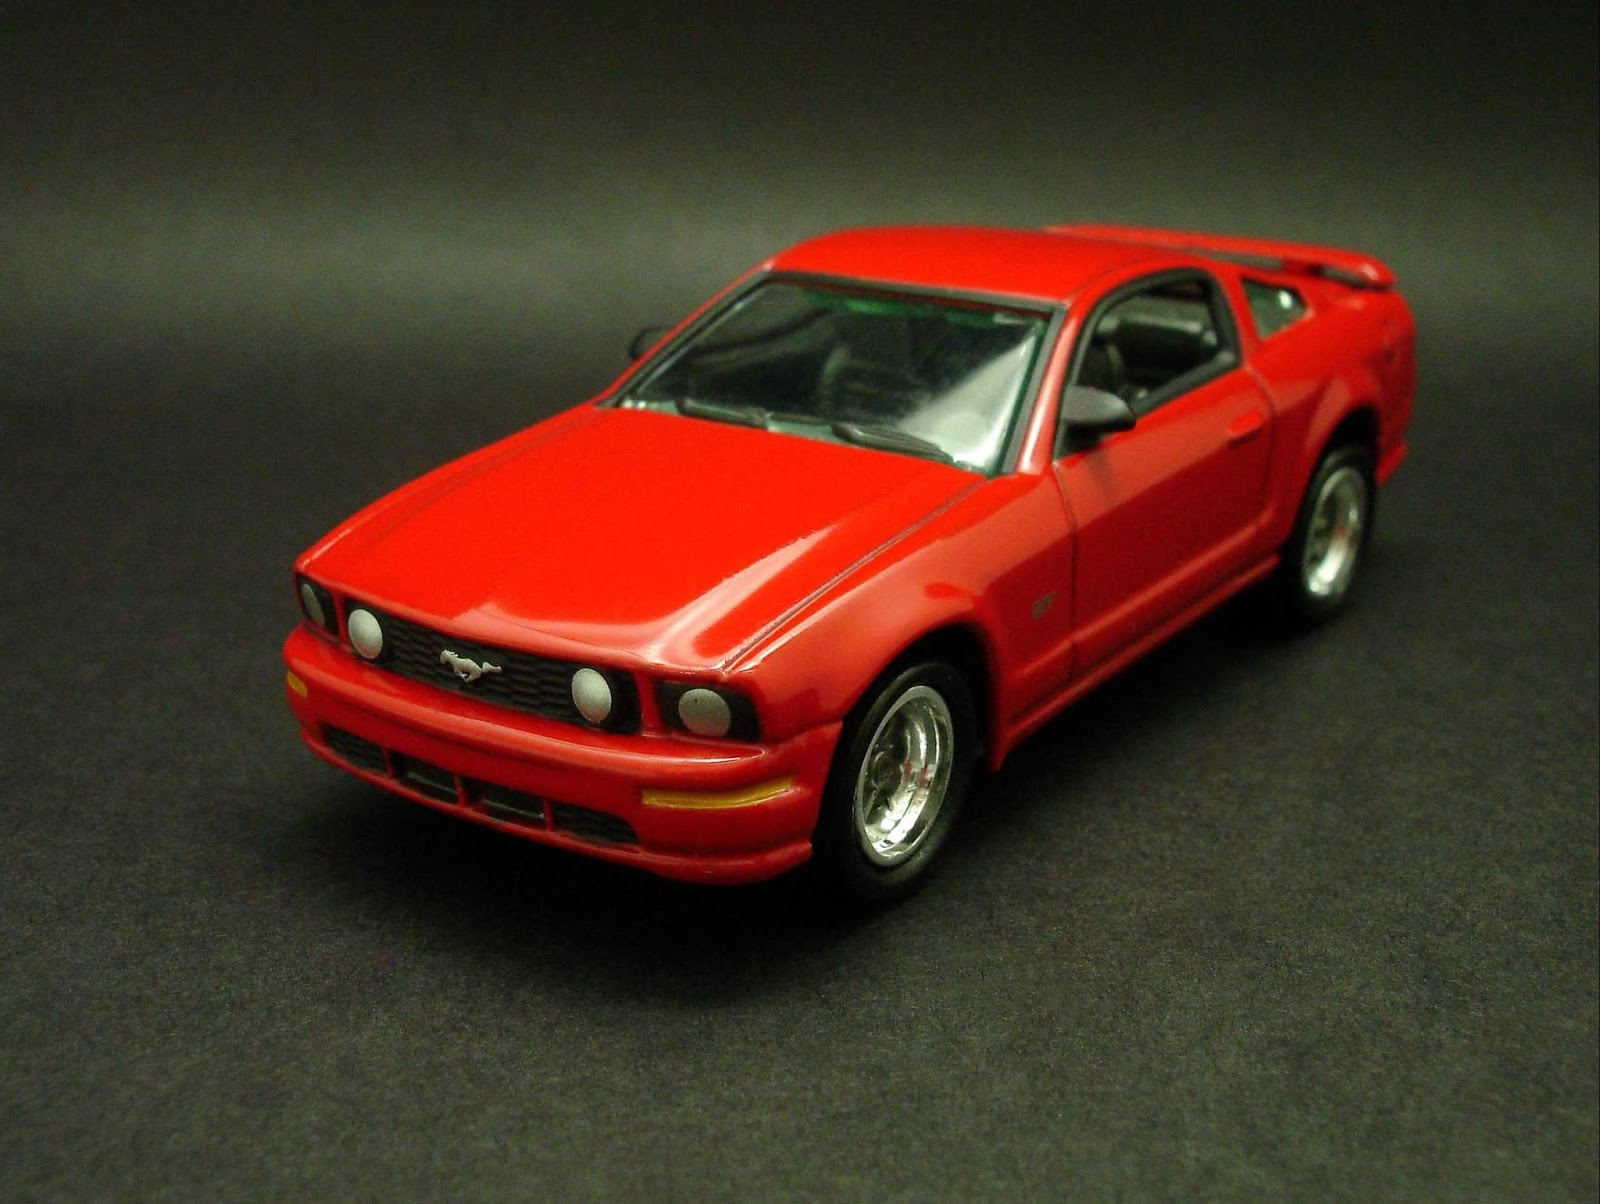 2005 ford mustang gt 1 64 scale diecast from johnny lightning muscle cars box set 2007